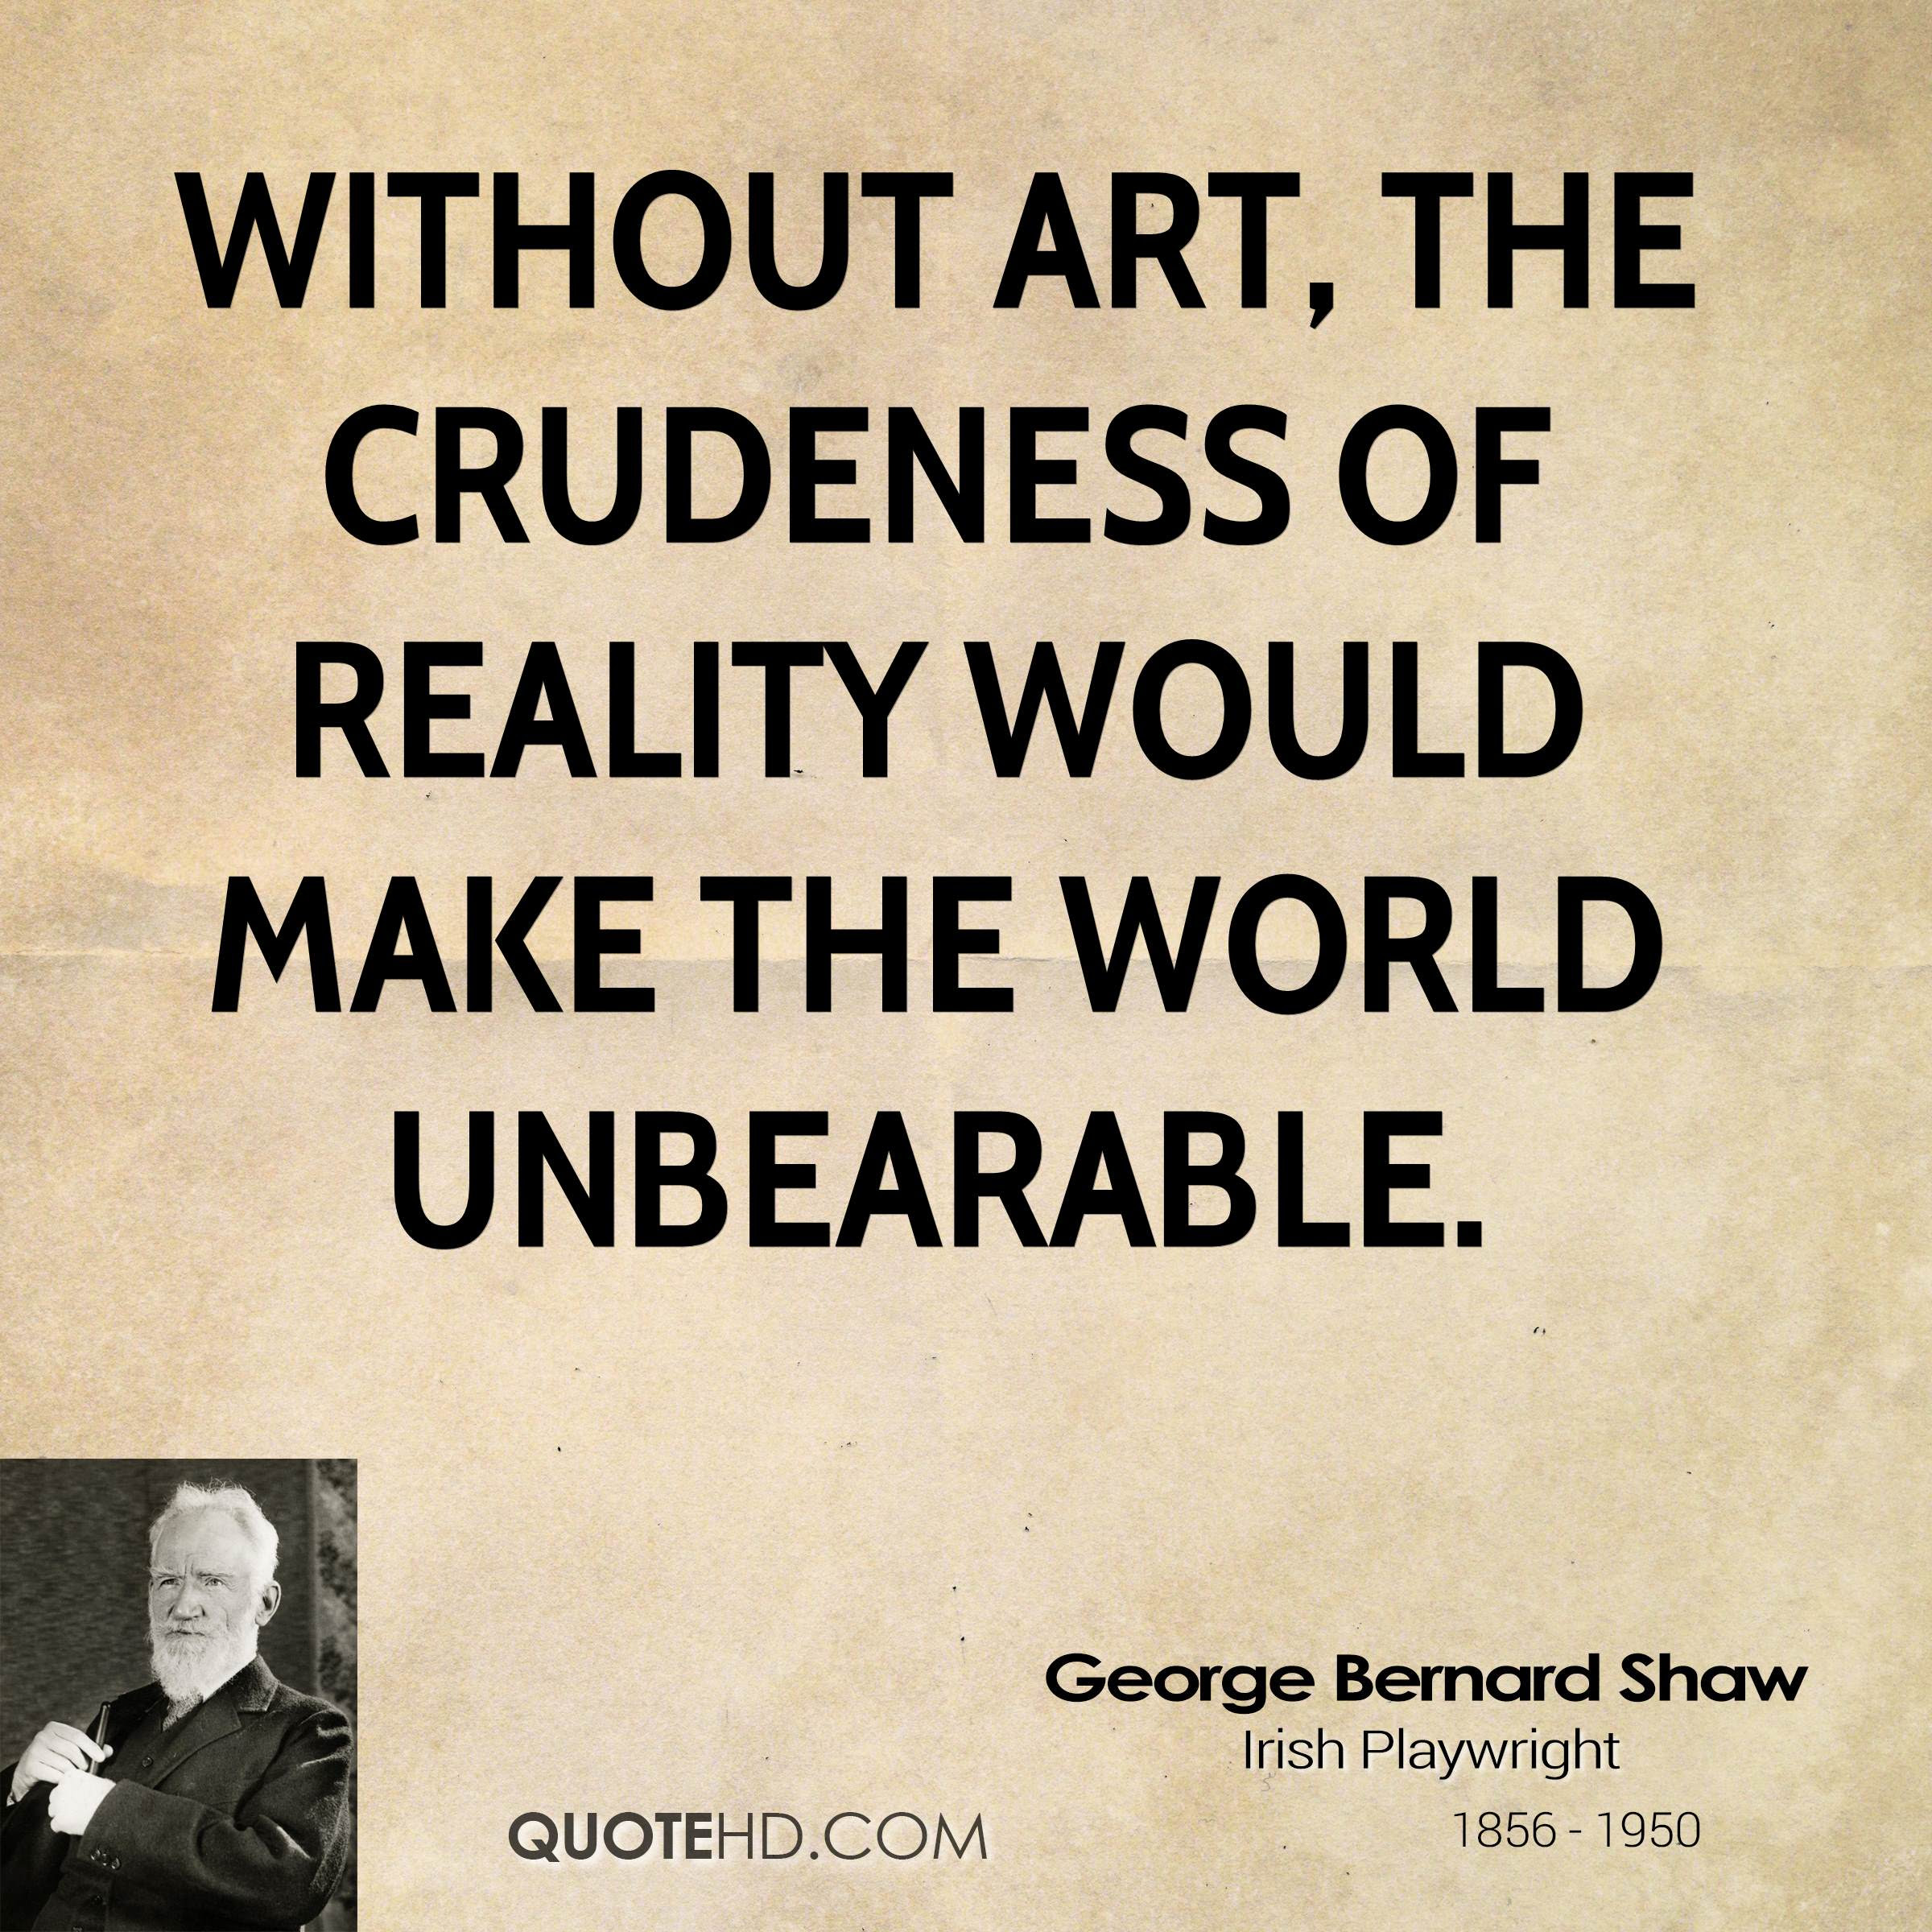 Without art the crudeness of reality would make the world unbearable